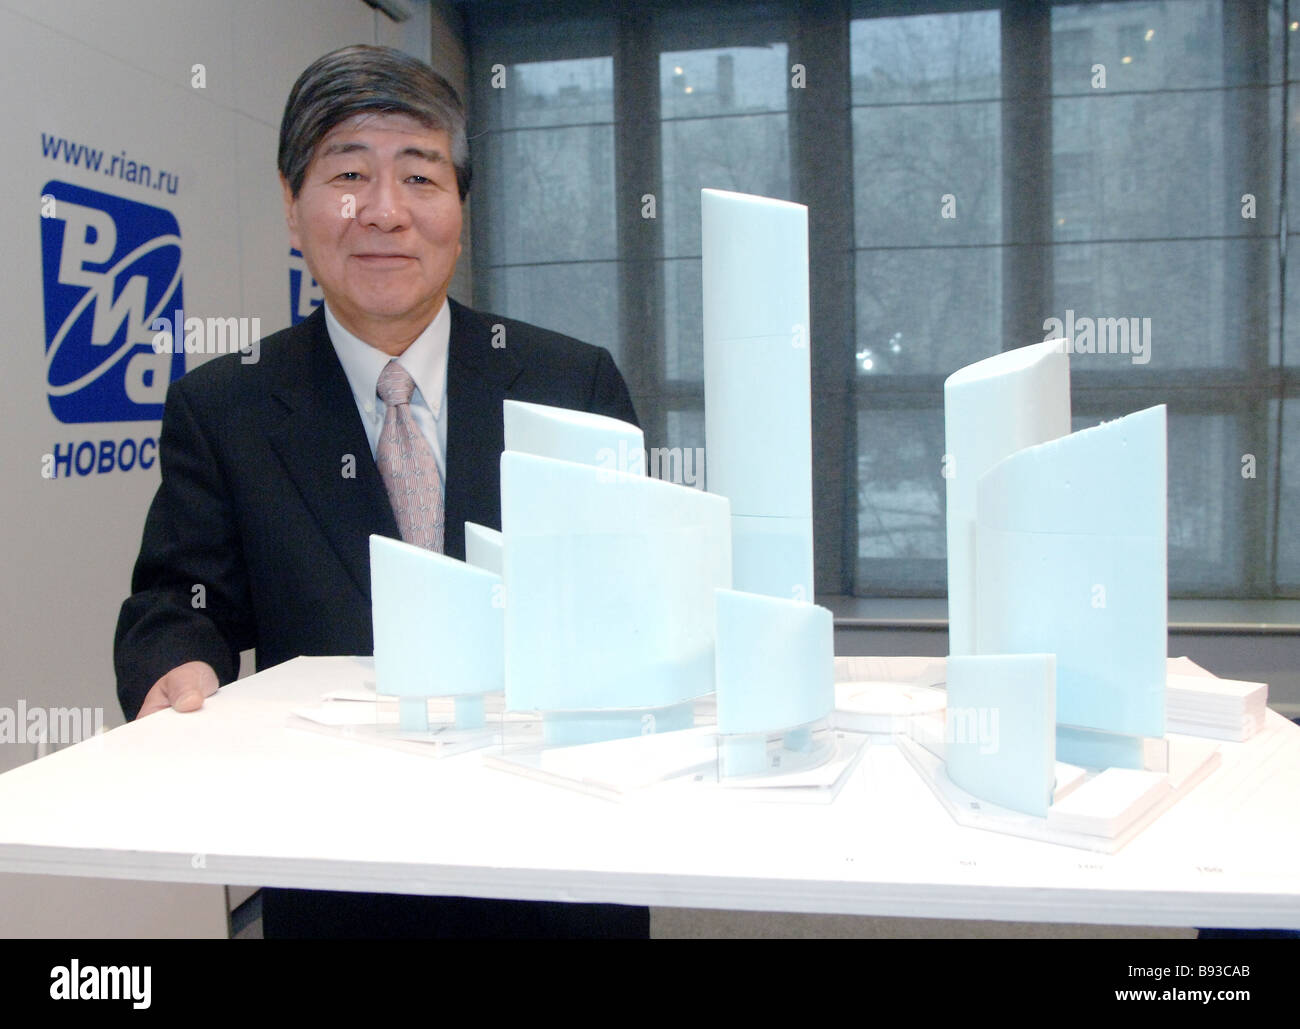 Chairman of the Board of Directors of Nikken Sekkei Ltd Mitsuo Nakamura at a news conference in RIA Novosti and - Stock Image